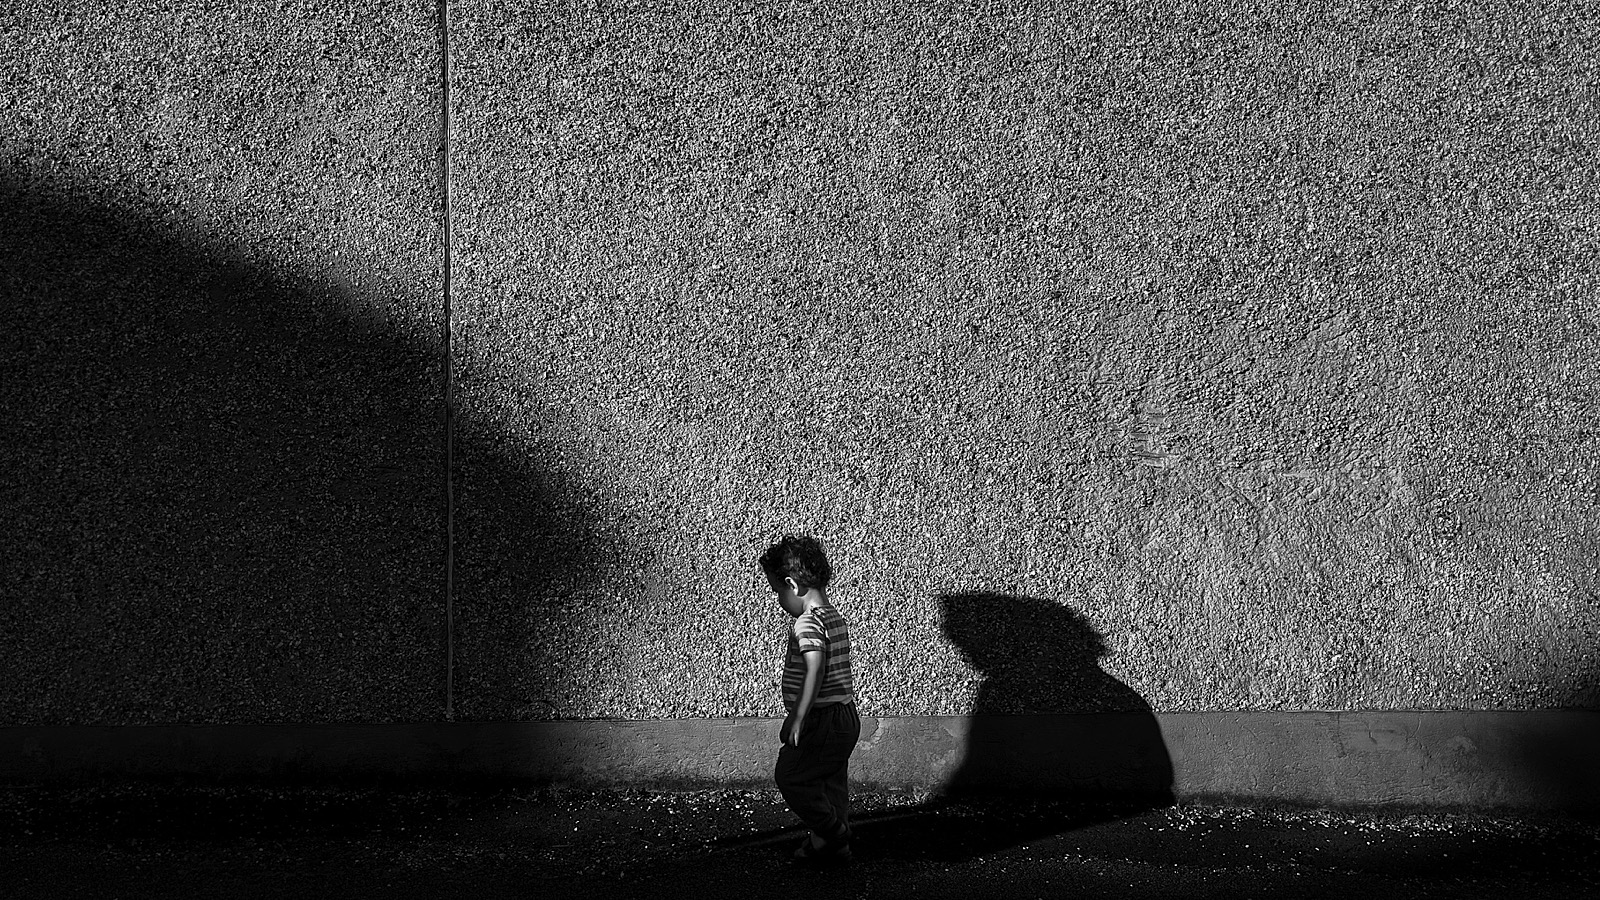 Street Photography of a young child against contrasting shadows